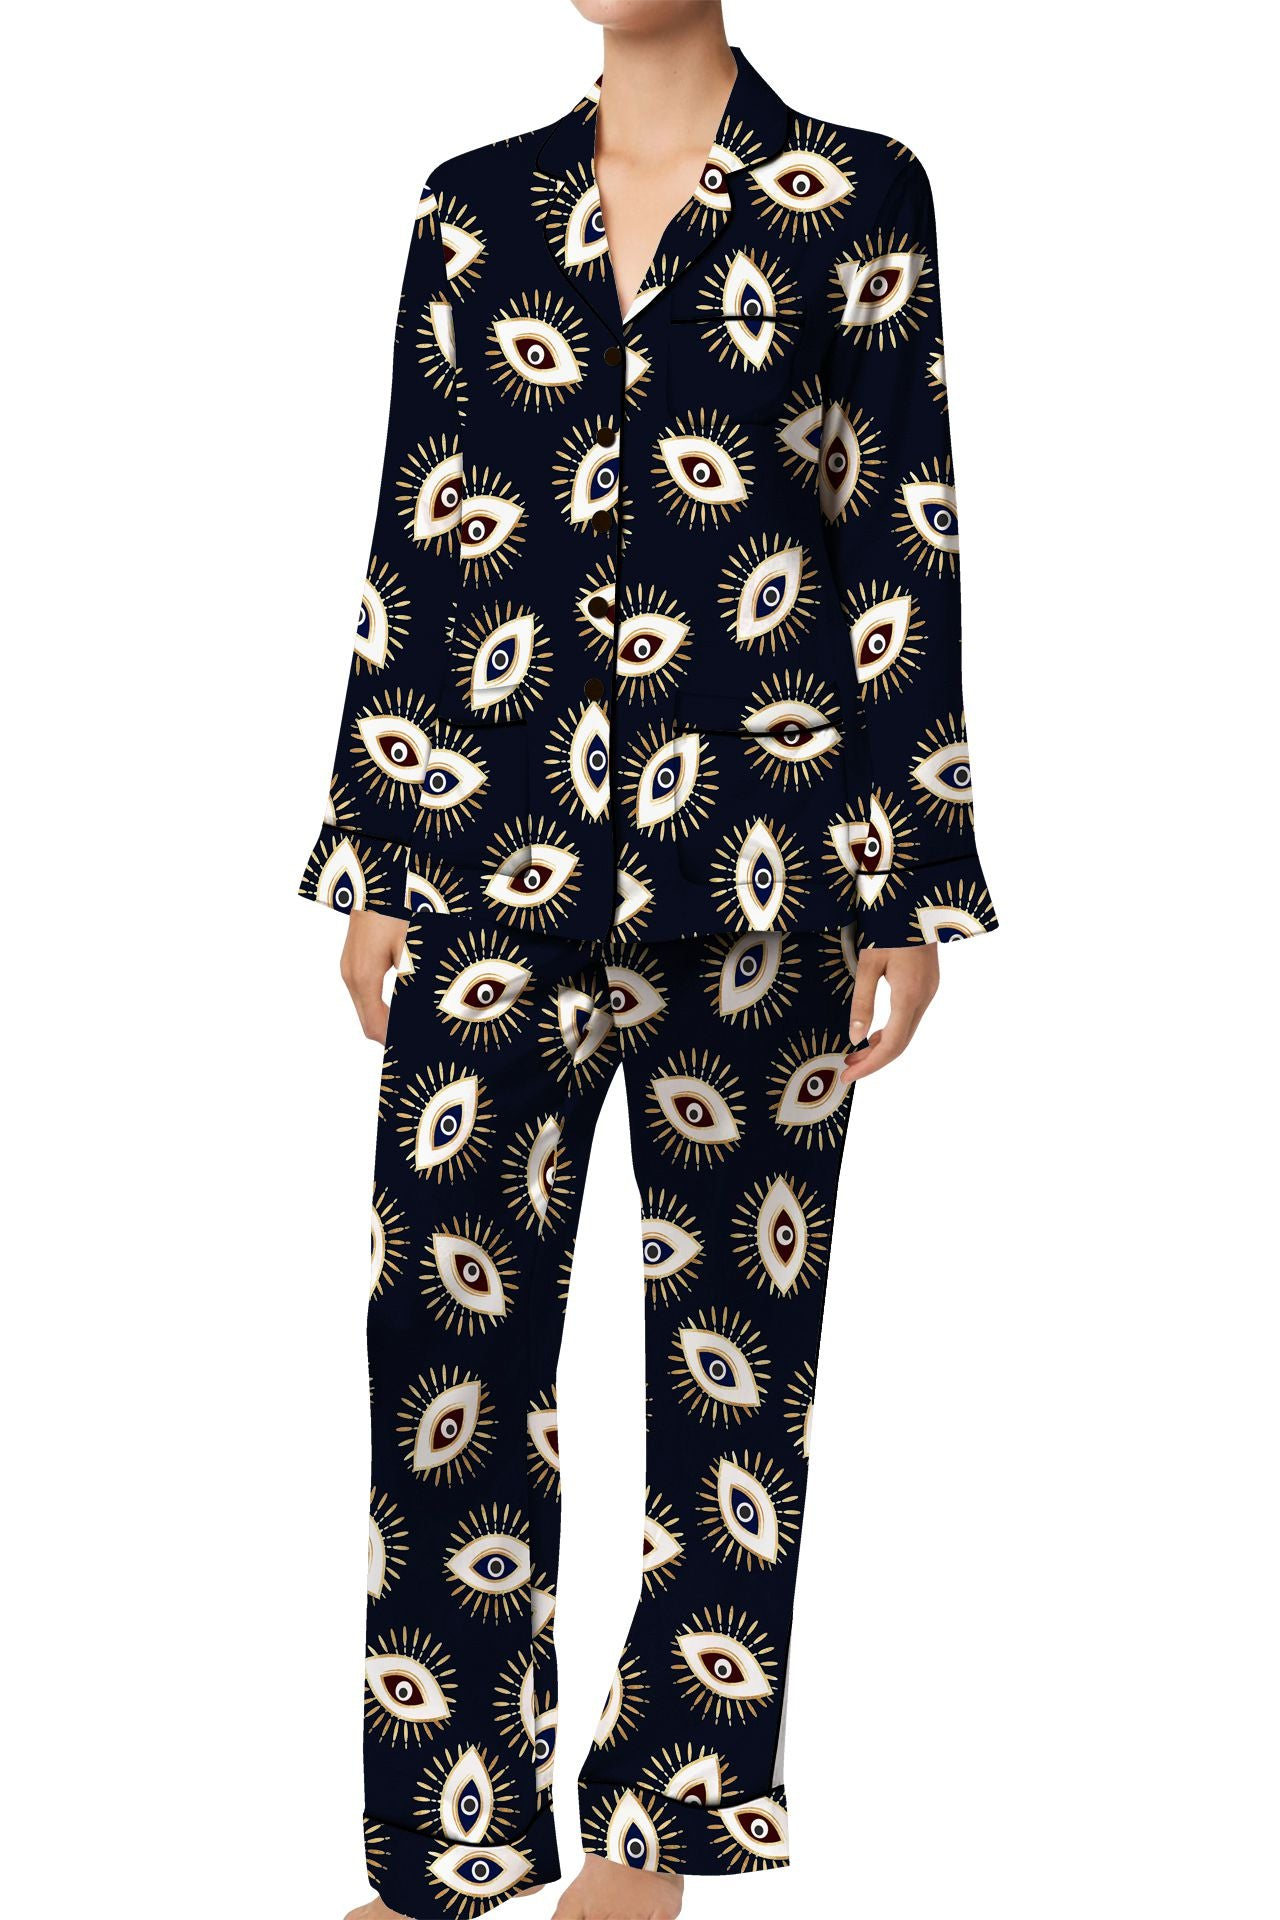 Made with Cupro vegan silk satin Full Sleeve Pajama Set in Evil Eye Black